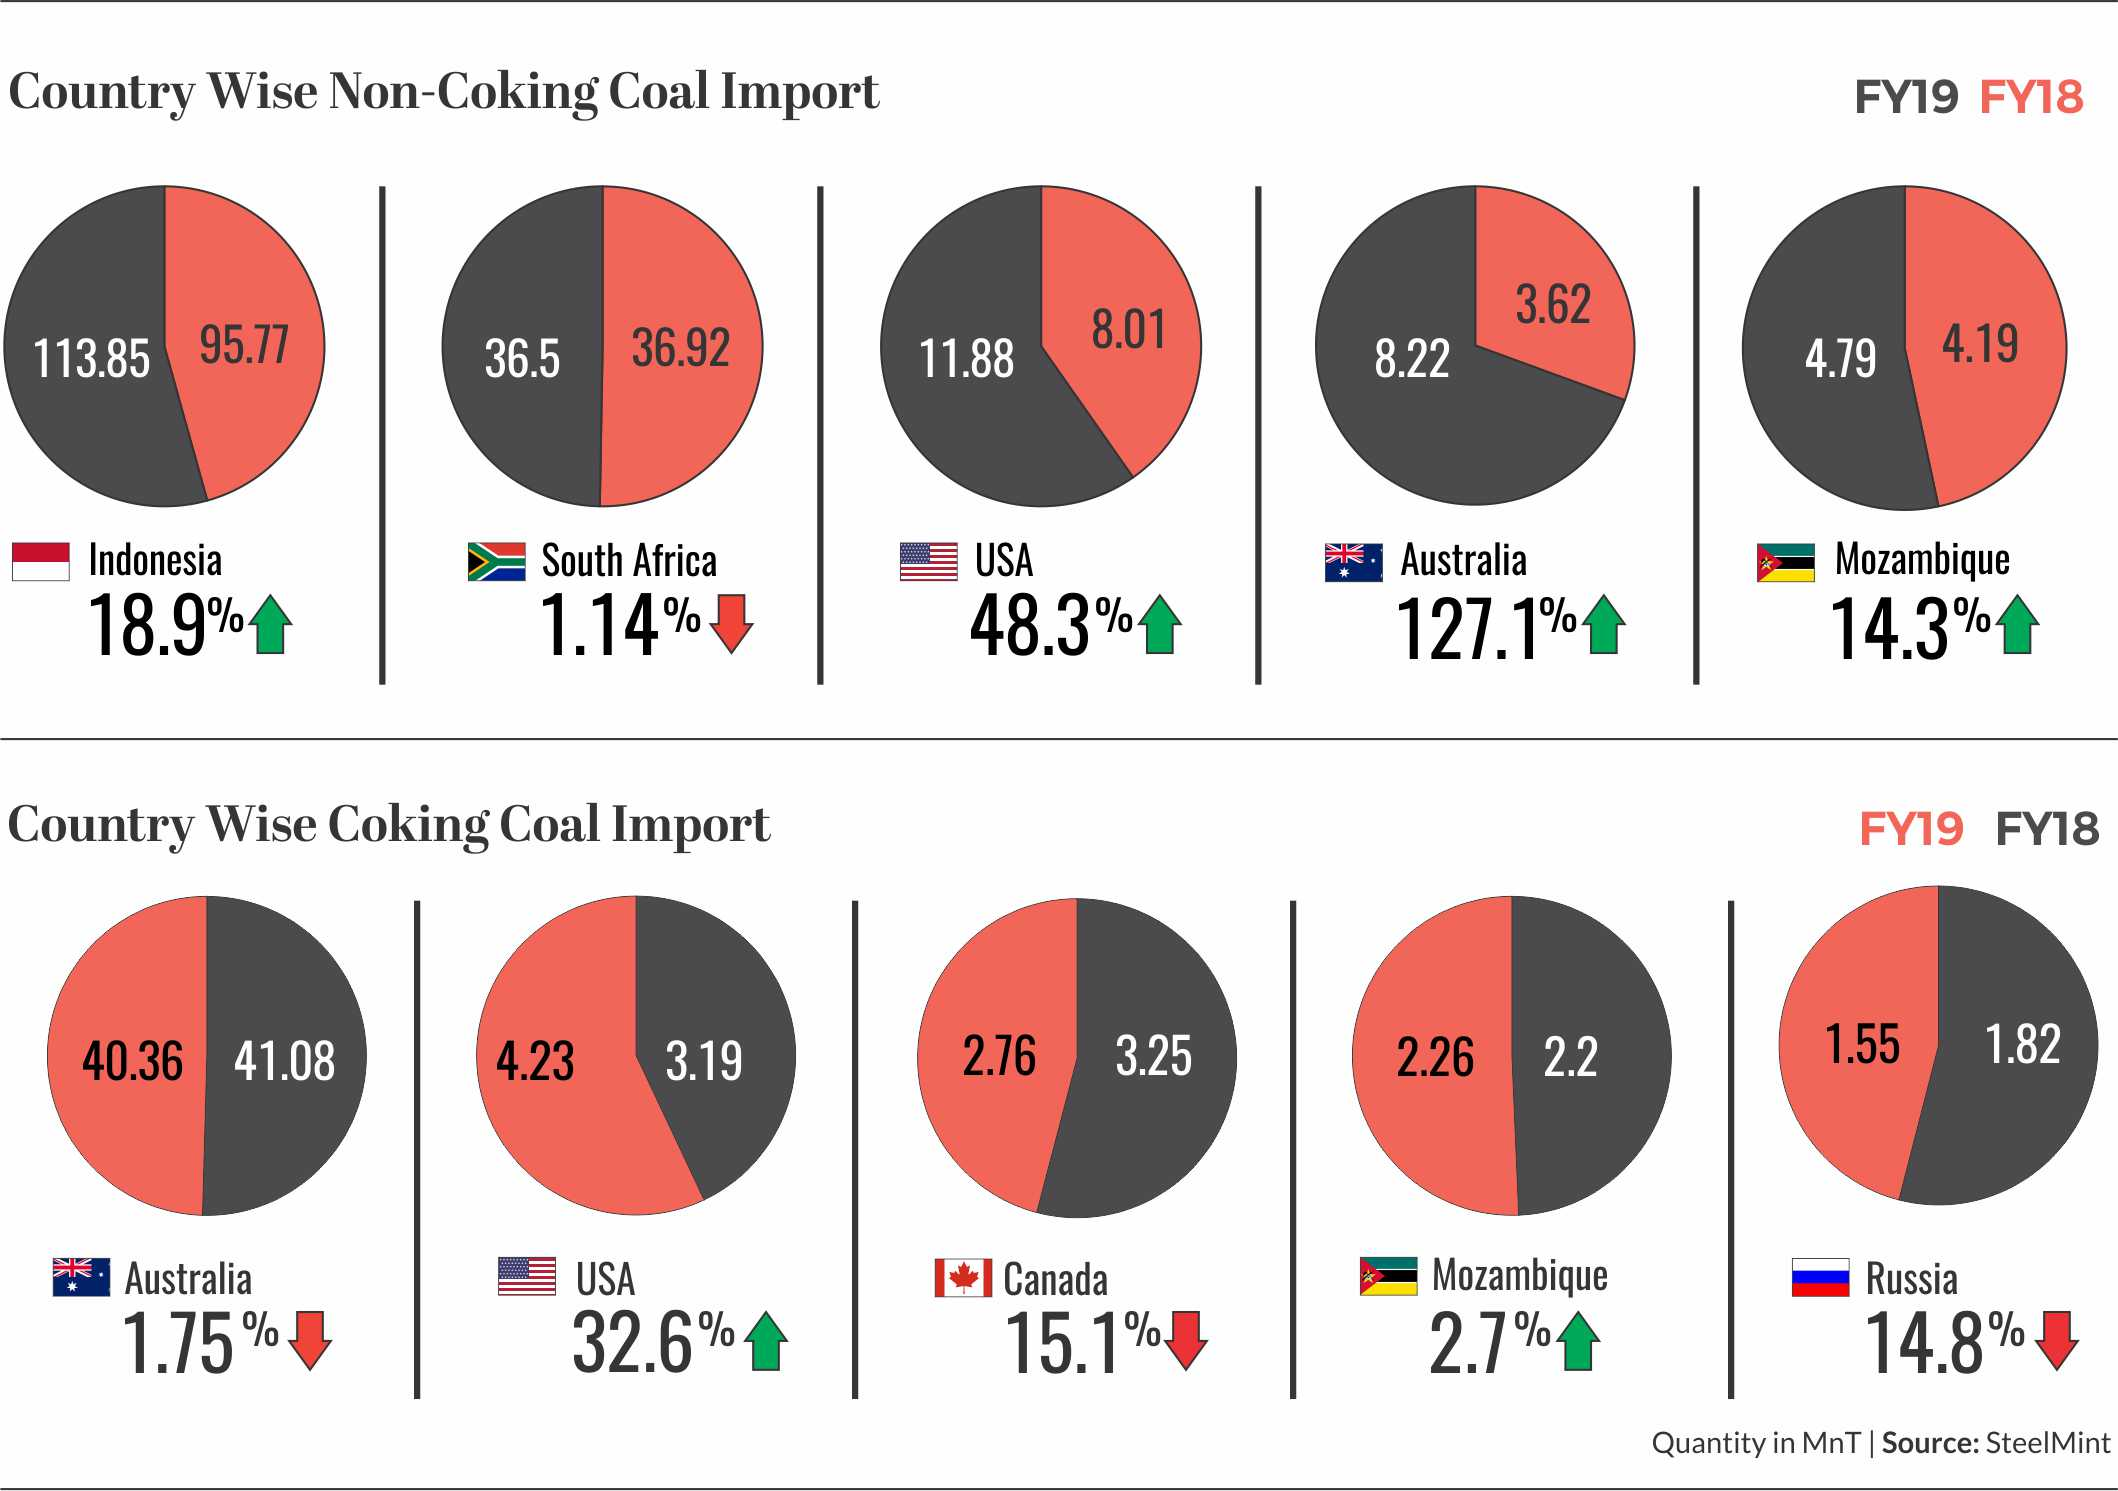 Non-Cooking & Cooking coal imports